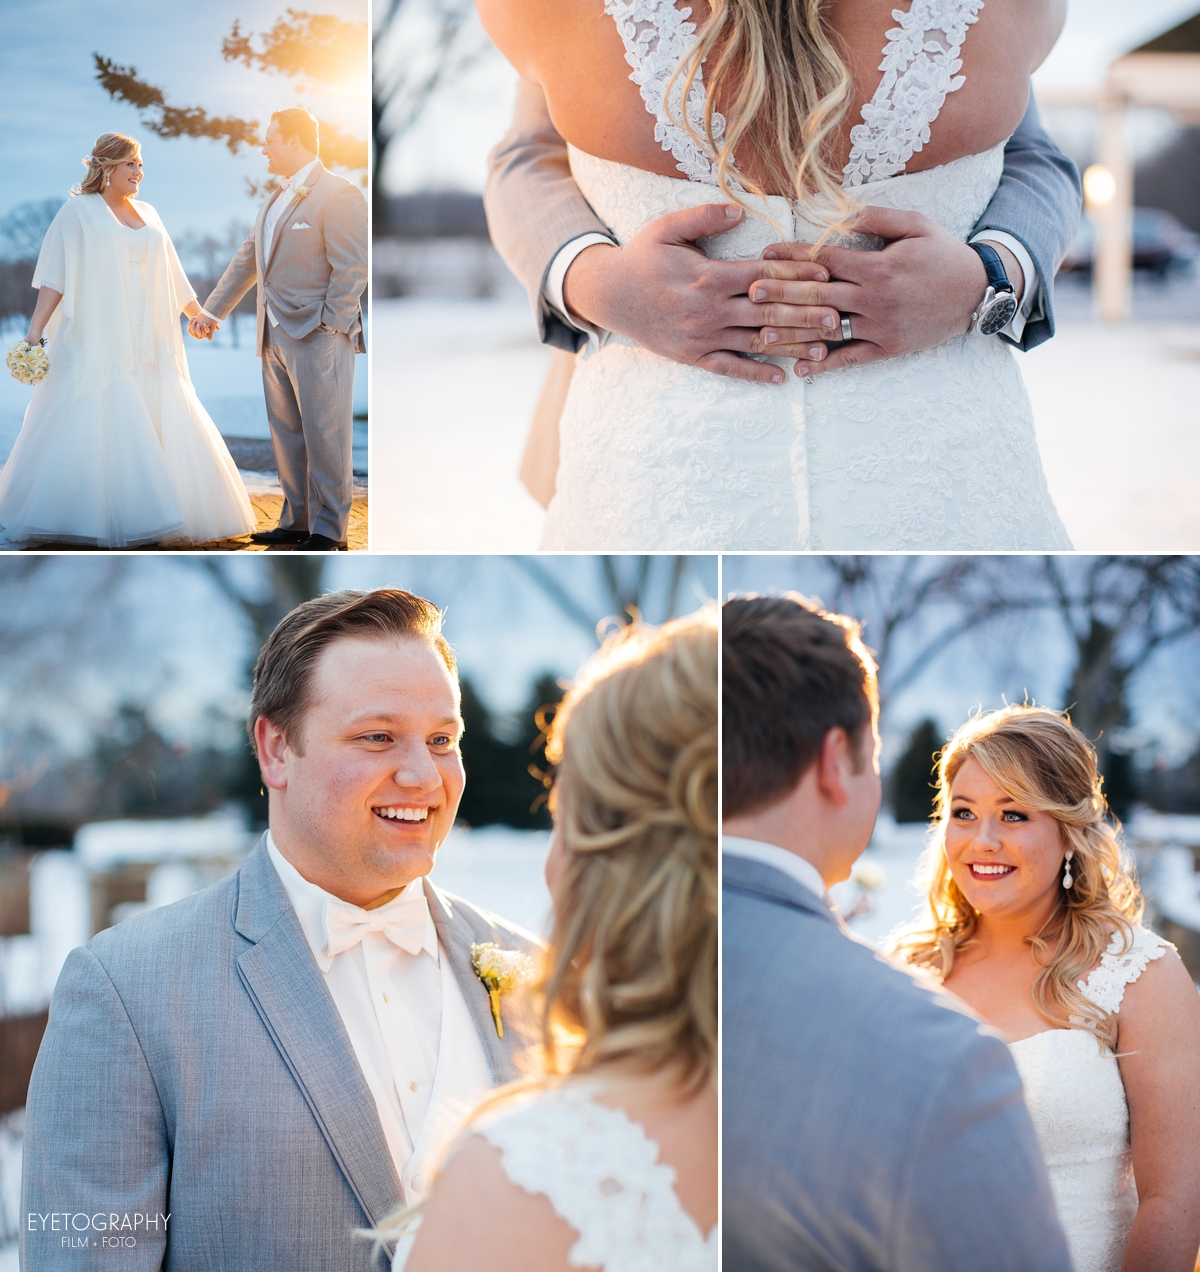 Minneapolis Golf Club Wedding Photography - Alex + Jordan 20